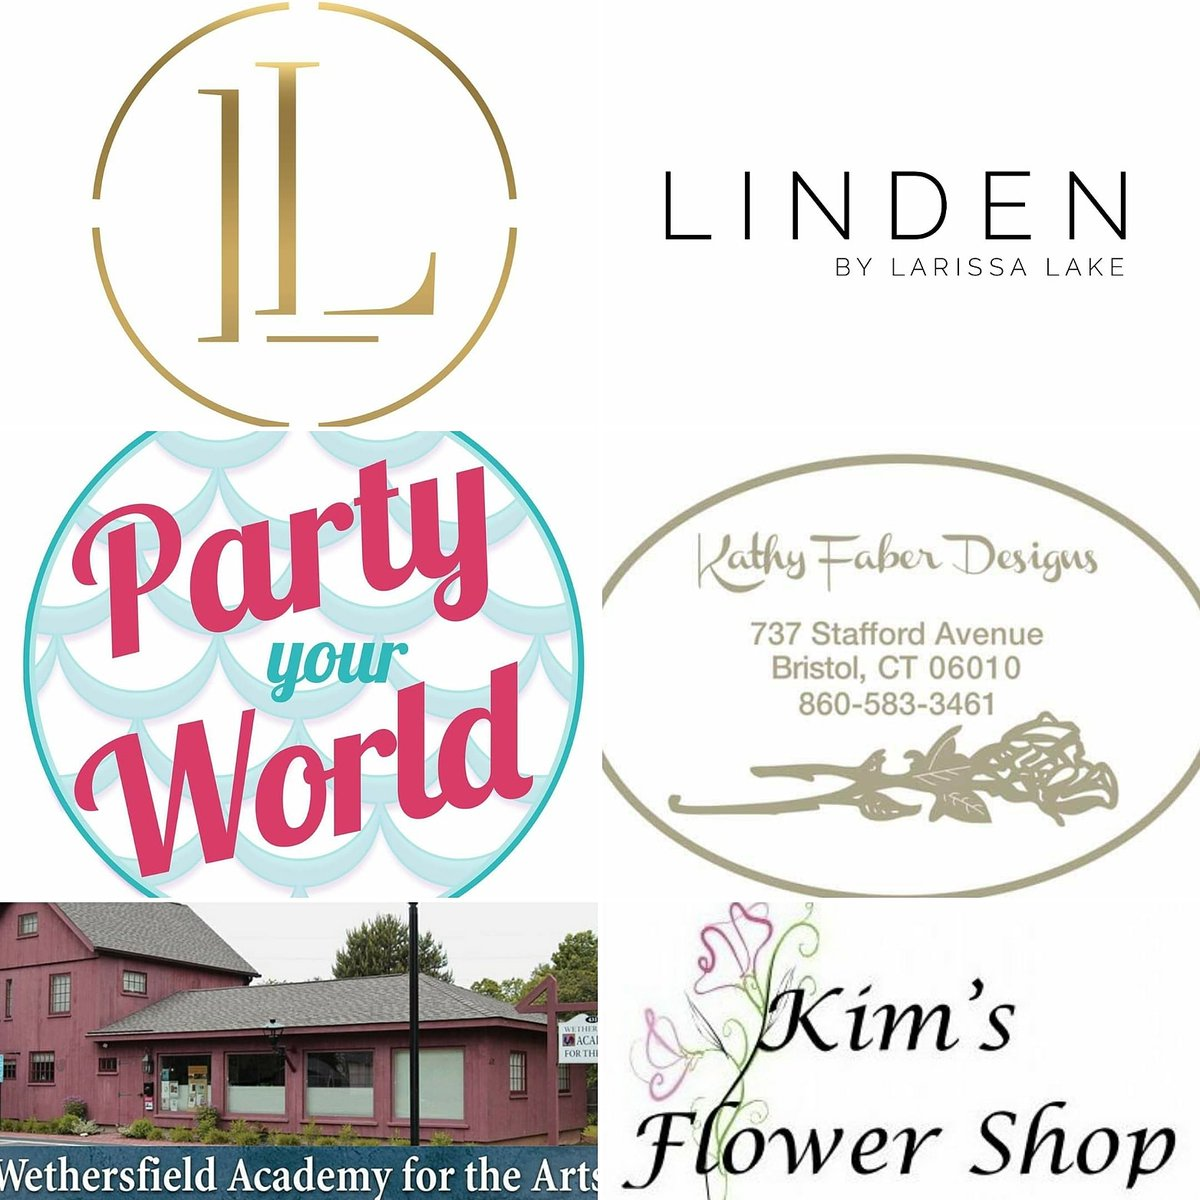 Vendor Spotlight Feb. 29th Bridal Showcase. Prepare to be inspired! Larissa Lake and Co Linden by Larissa Lake Kim's Flower Shop Party Your World Wethersfield Academy for the Arts Kathy Faber Designs Sunshine Entertainment/DJ Chris Hookie   #ctweddings #oldwethersfield pic.twitter.com/2T0ndB6vZg